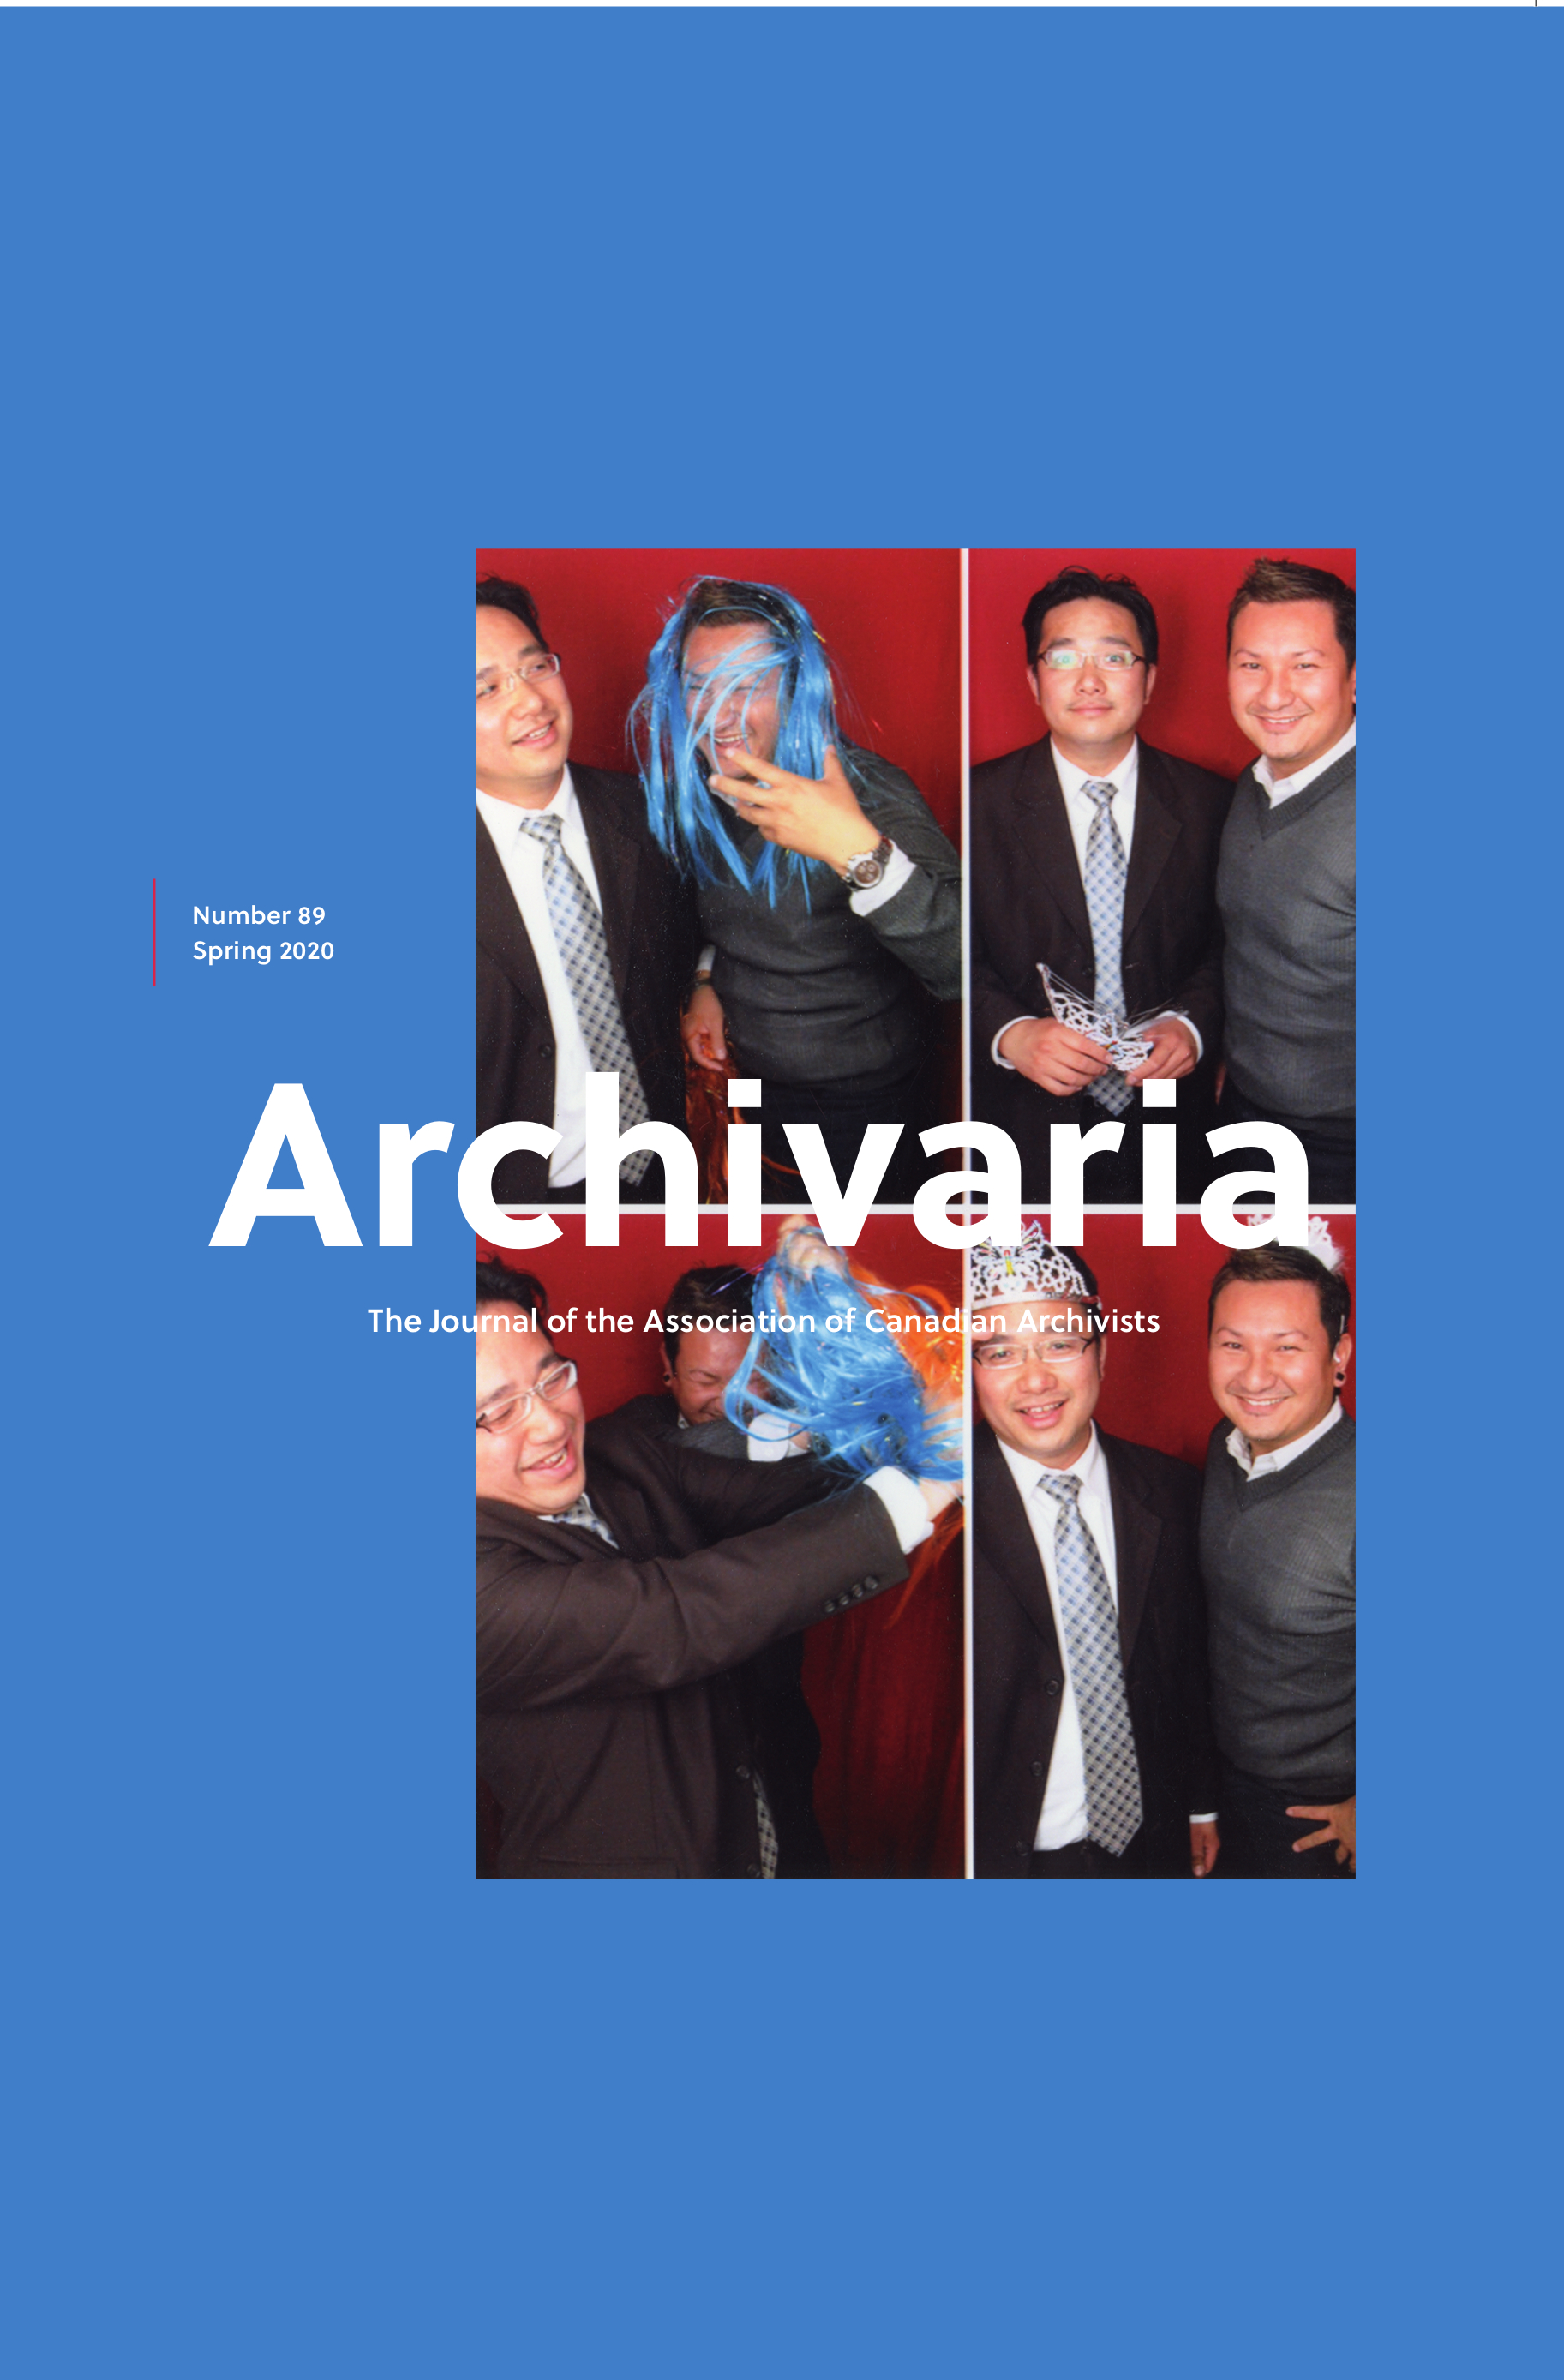 Archivaria 89 cover: image of Hon Lu with his cousin, Shanobi Lam